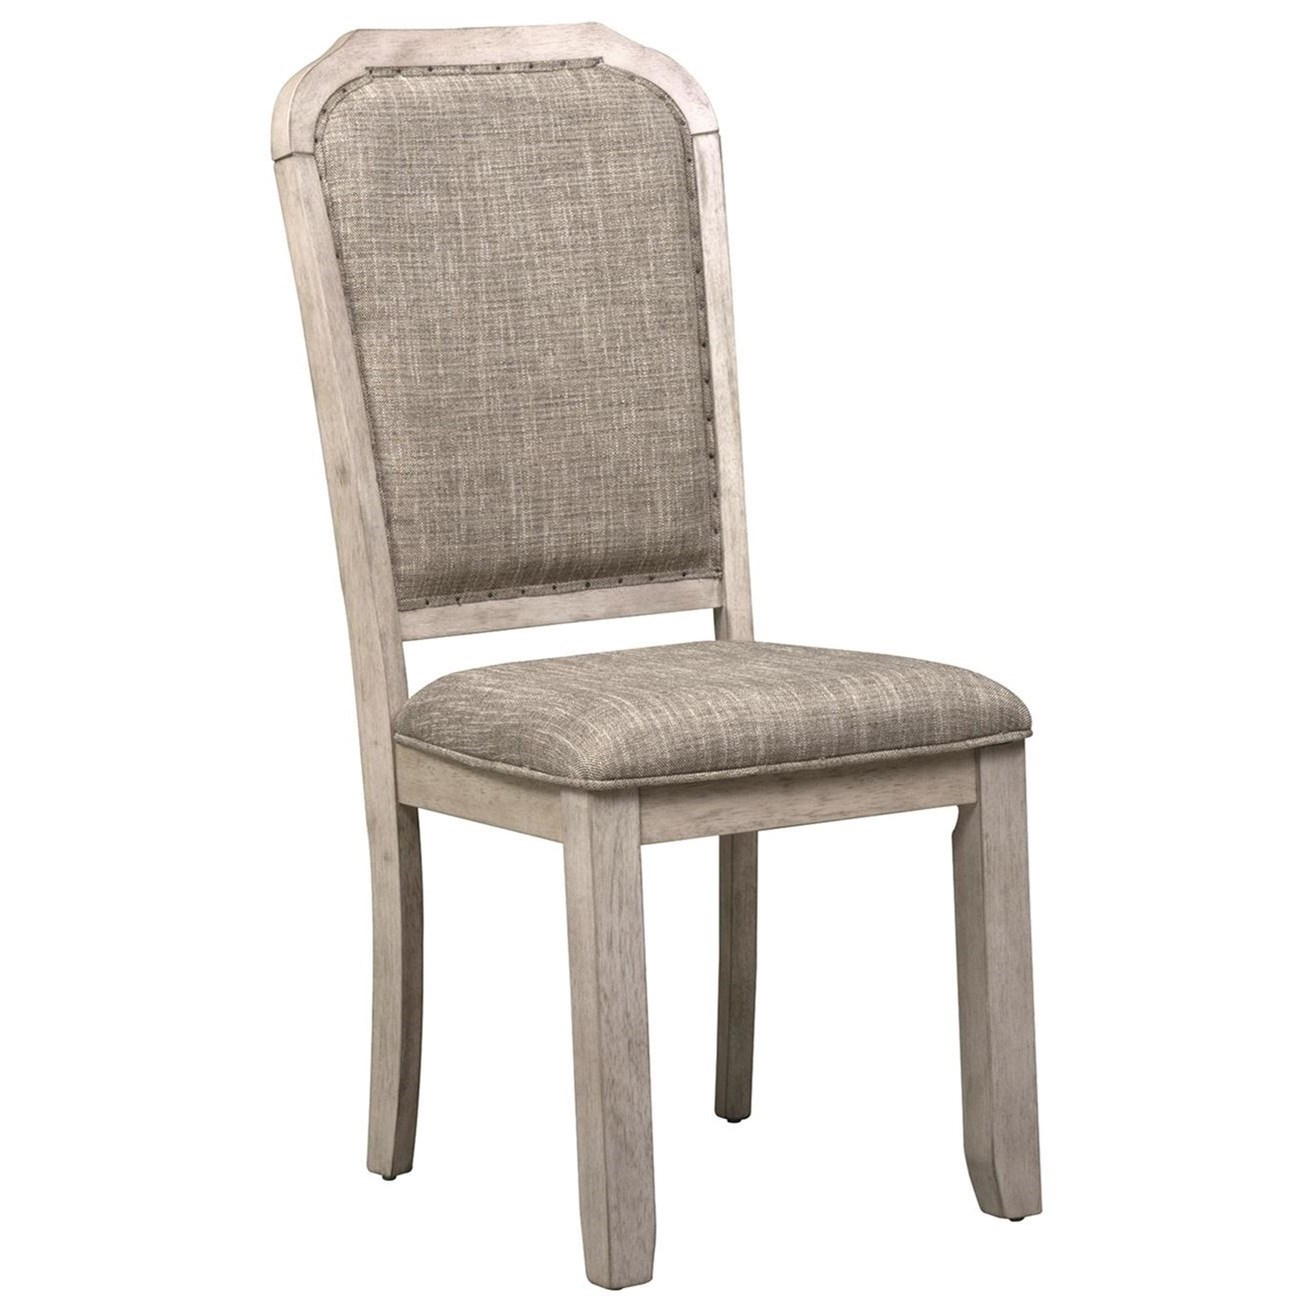 Willowrun Dining Side Chair by Libby at Walker's Furniture